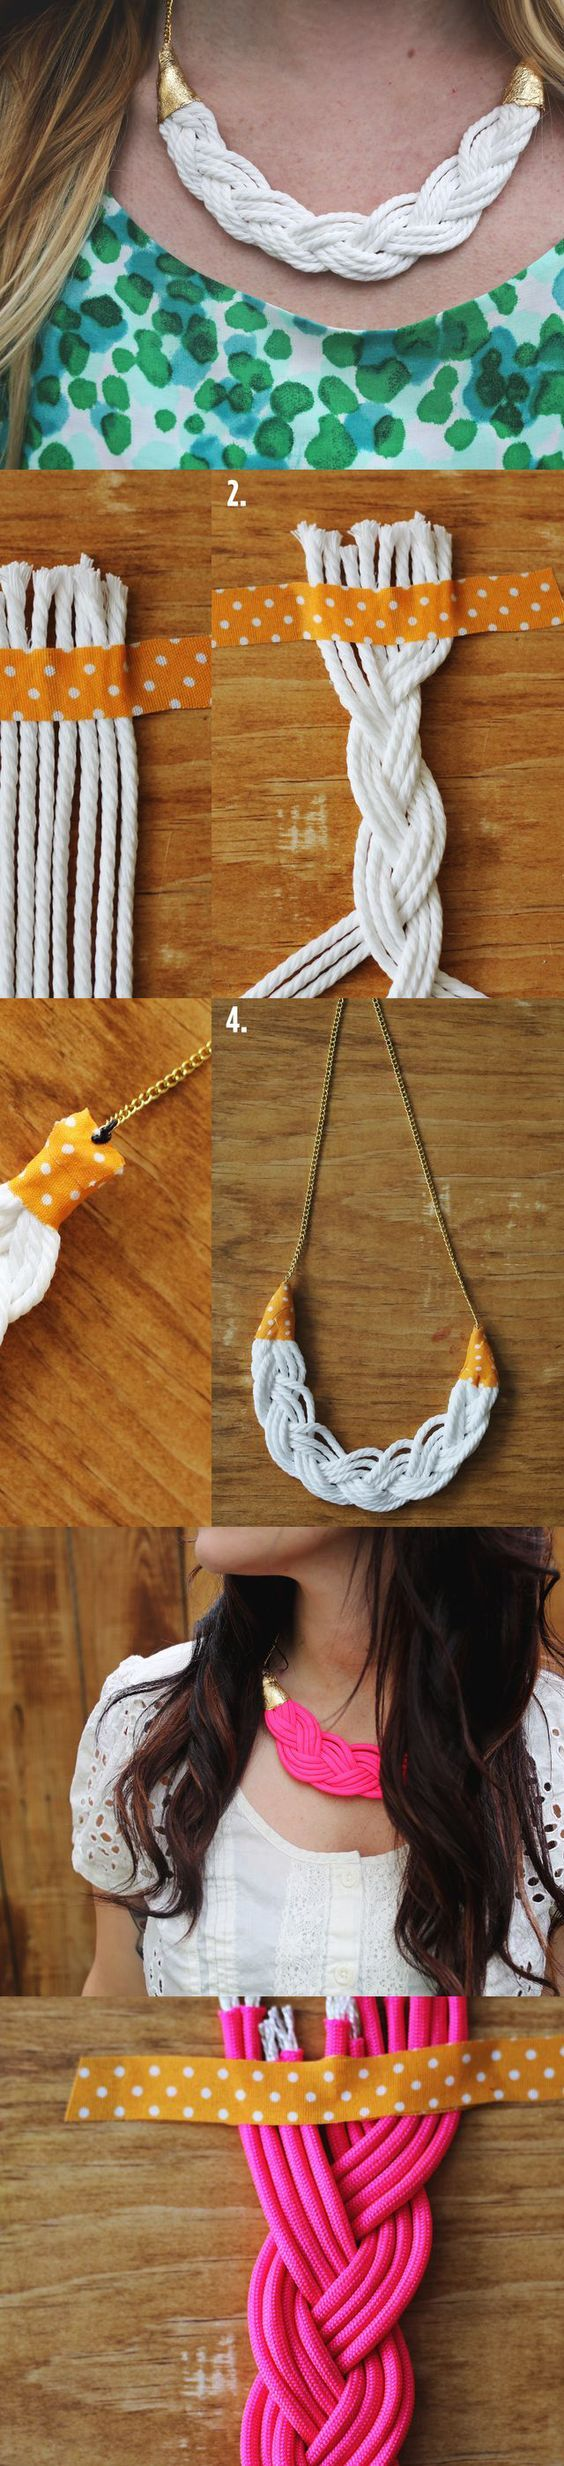 Amazingly Easy to Make DIY Fashion Projects: